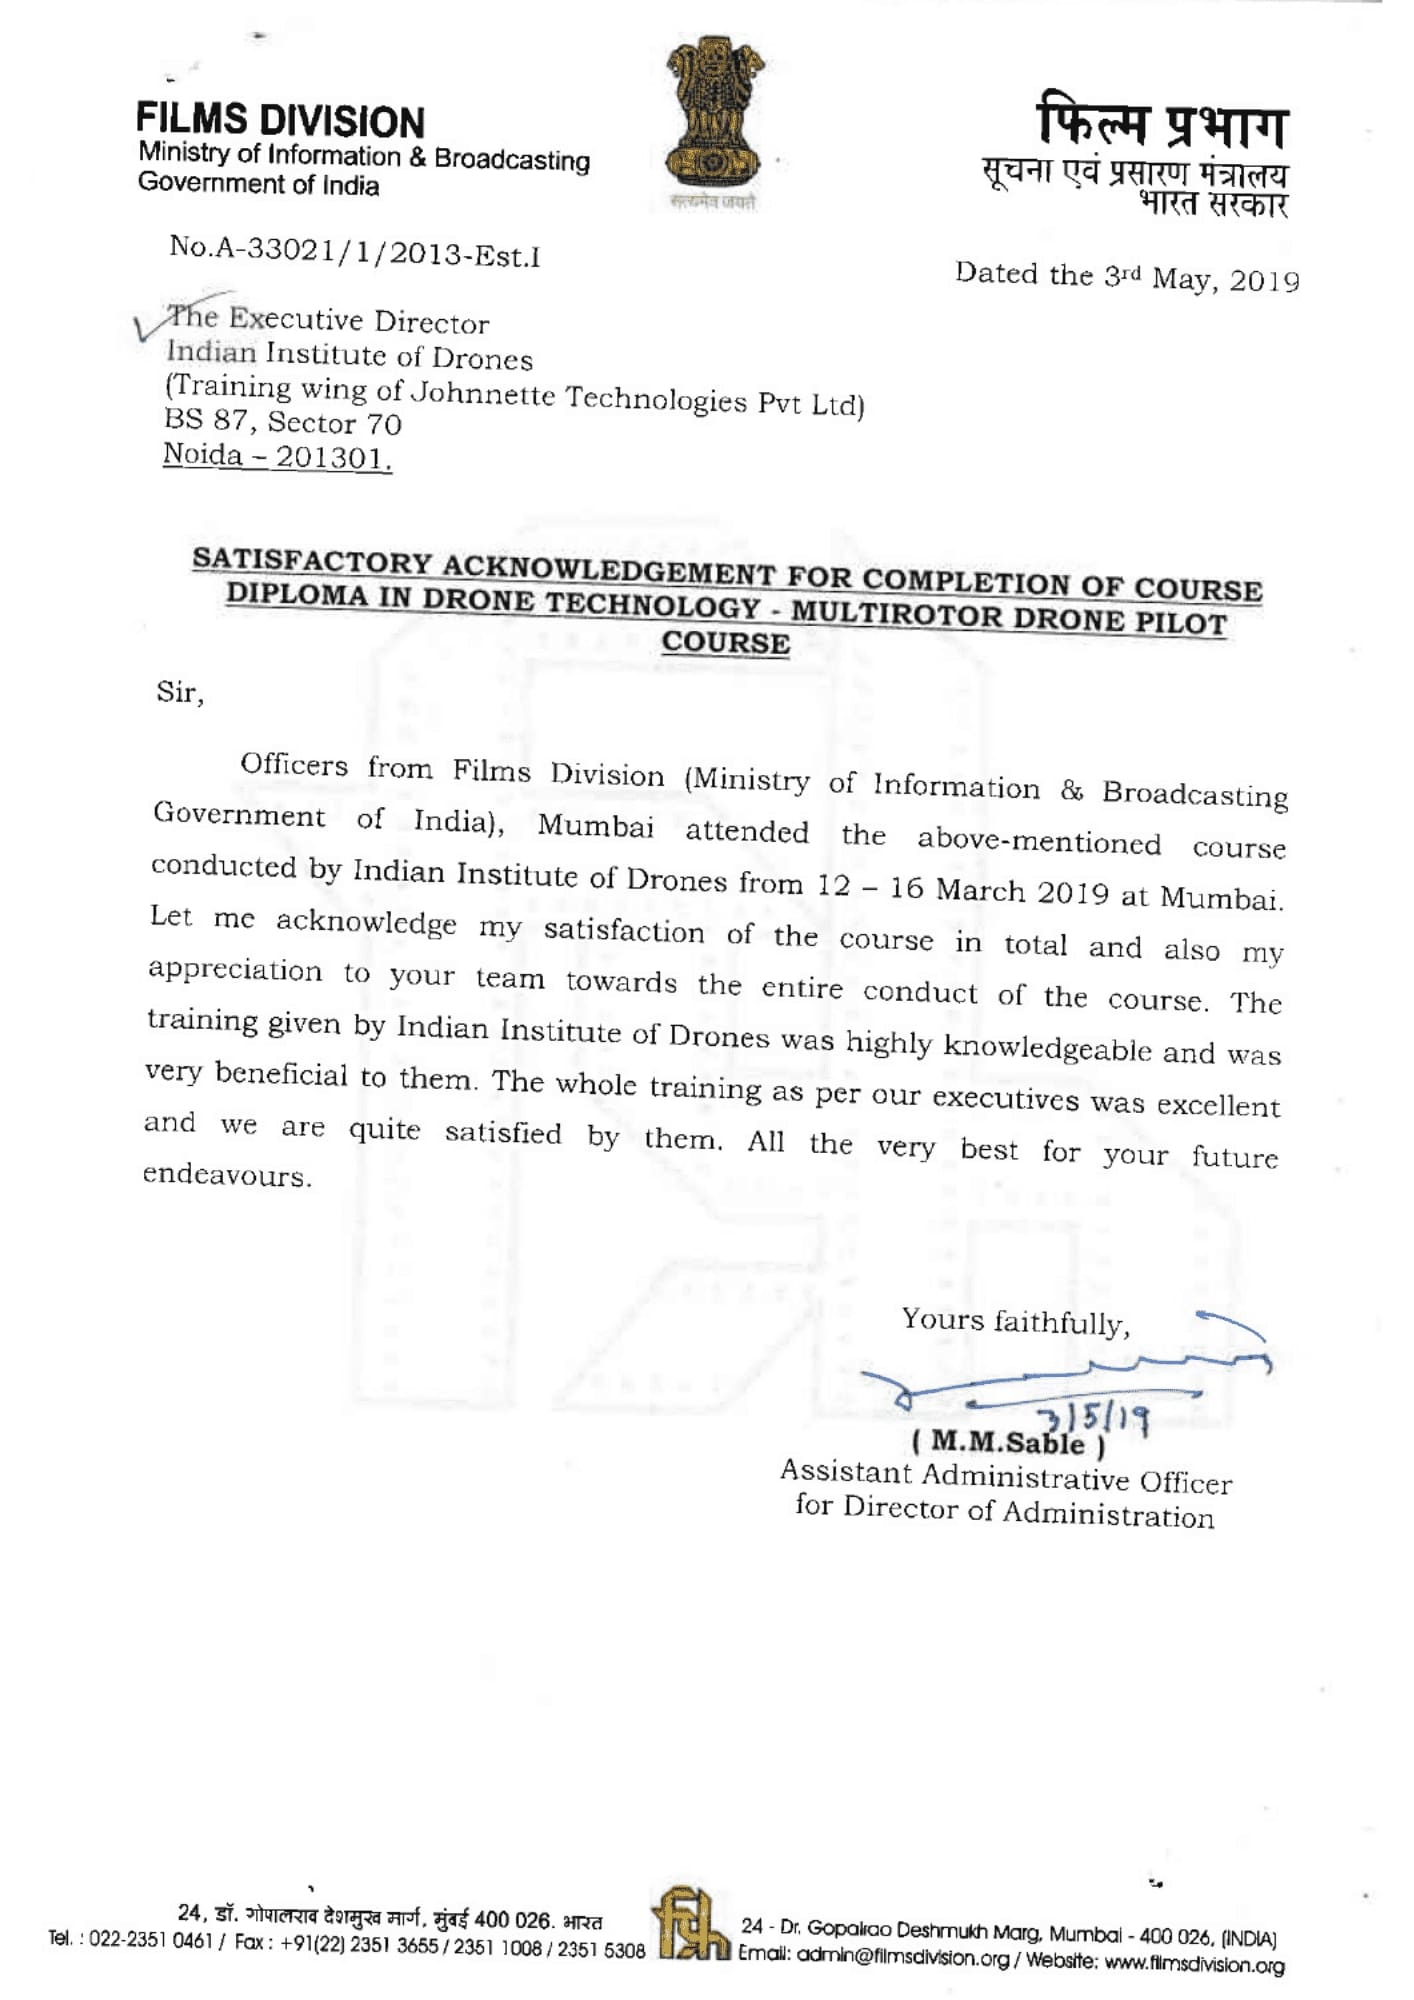 Satisfactory Letter from Ministry of Information and Broadcasting